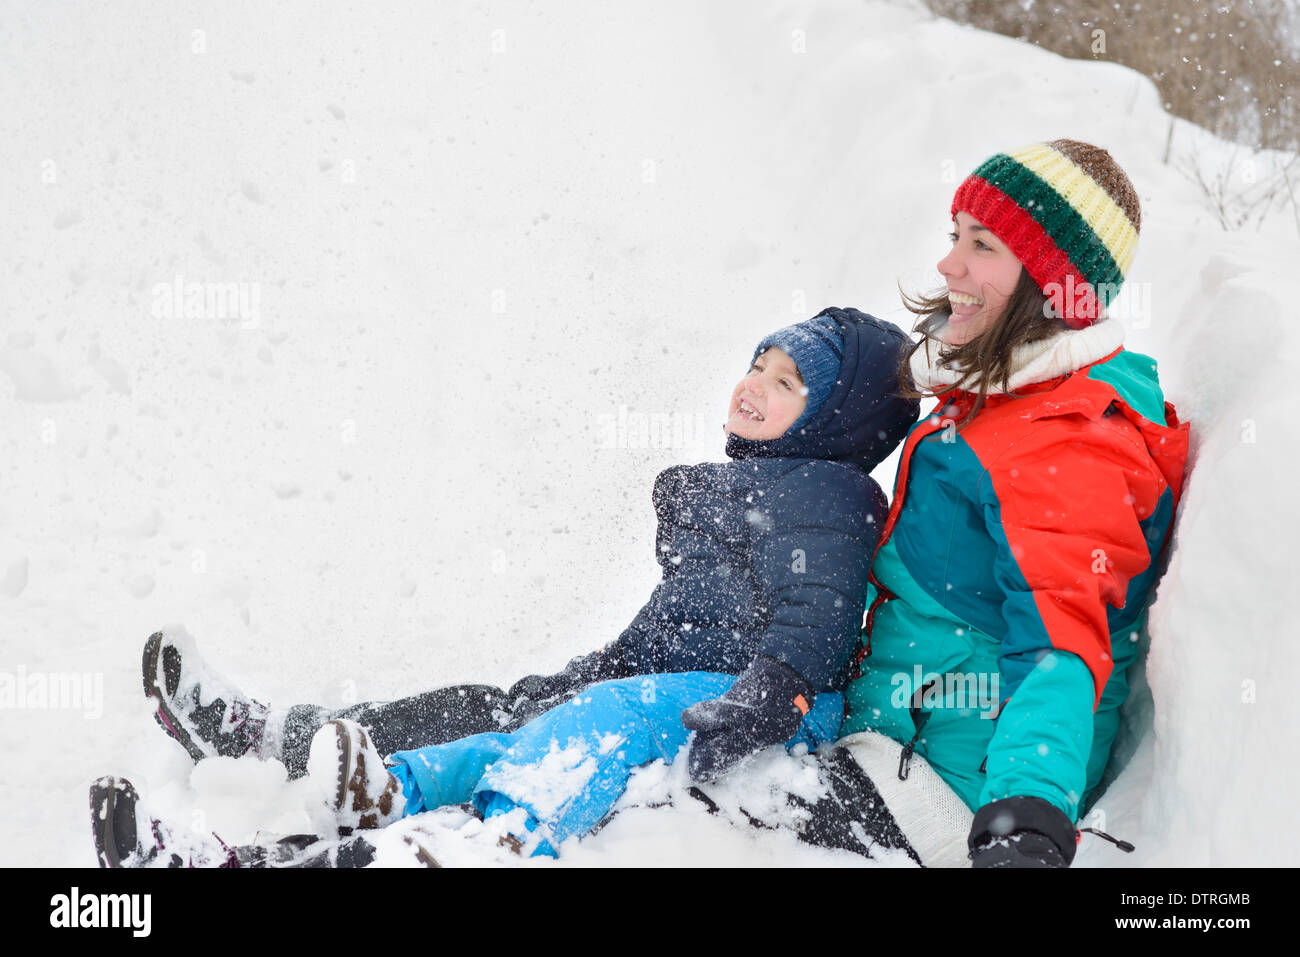 Moher and Son in Wintertime playing in snow - Stock Image